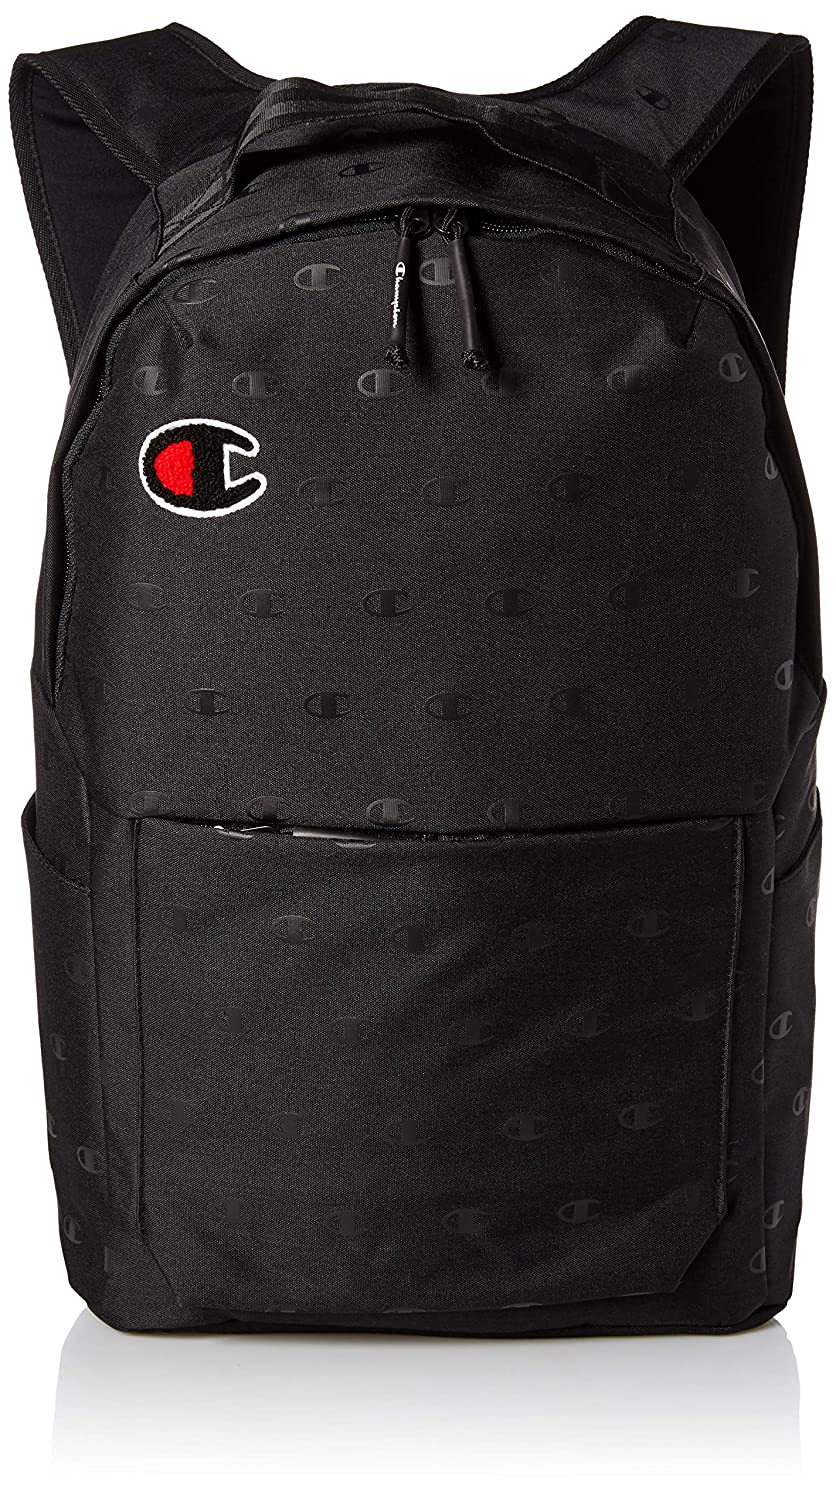 Champion Men's Advocate Backpack Black Heather OS CH1049-001